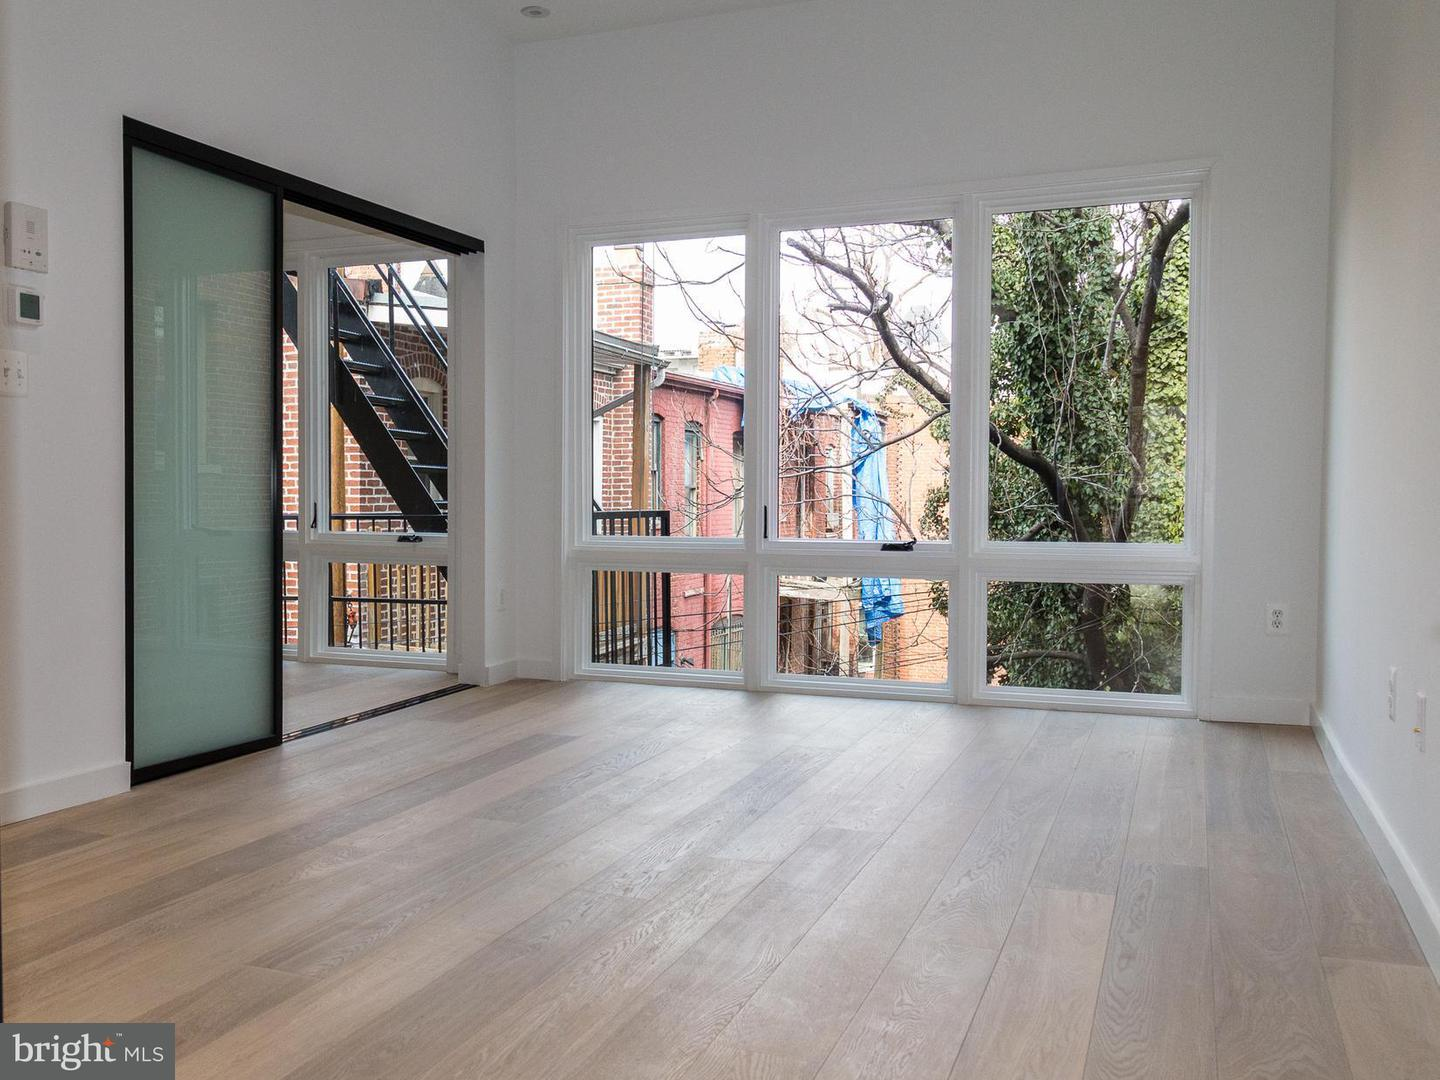 Other Residential for Rent at 1443 Euclid St NW #6 Washington, District Of Columbia 20009 United States